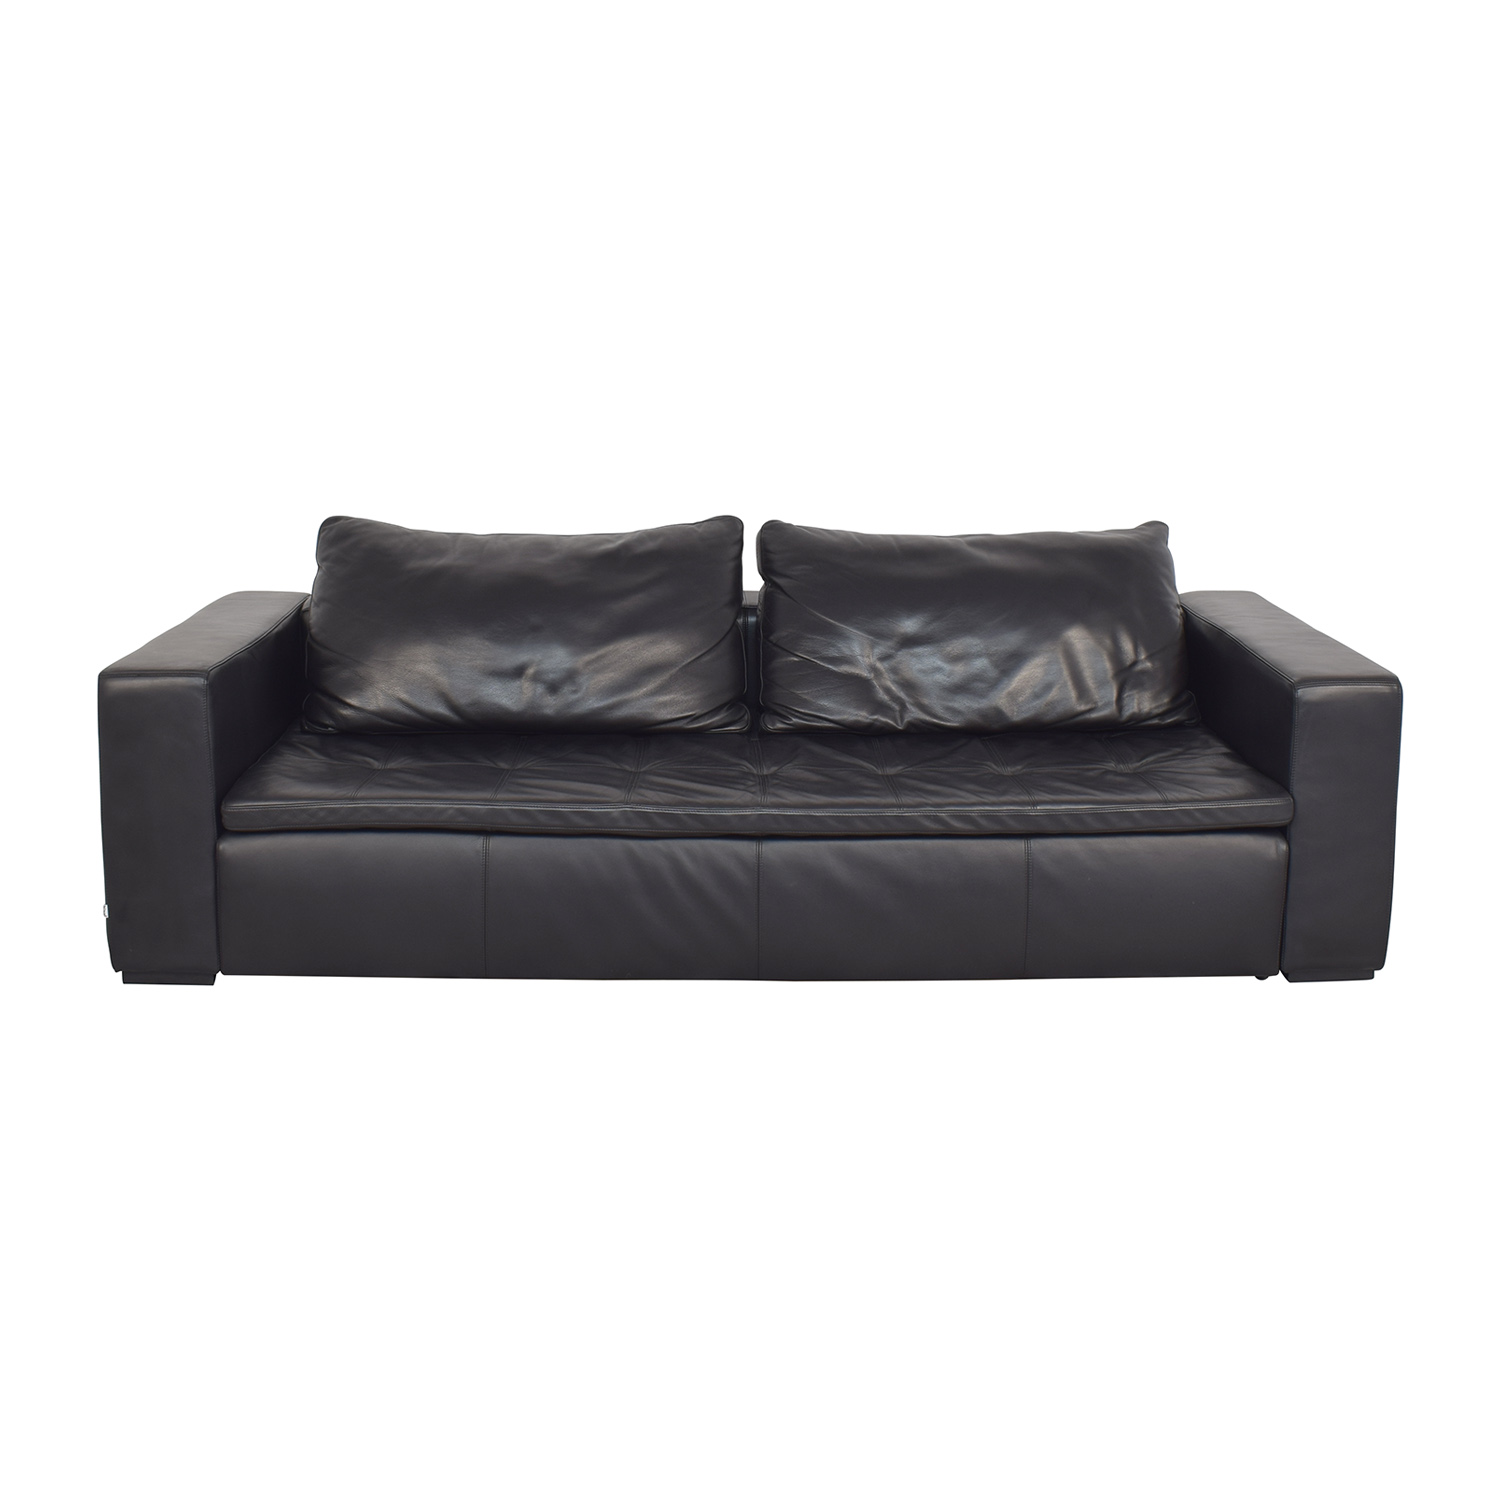 BoConcept BoConcept Mezzo Black Leather Sofa on sale